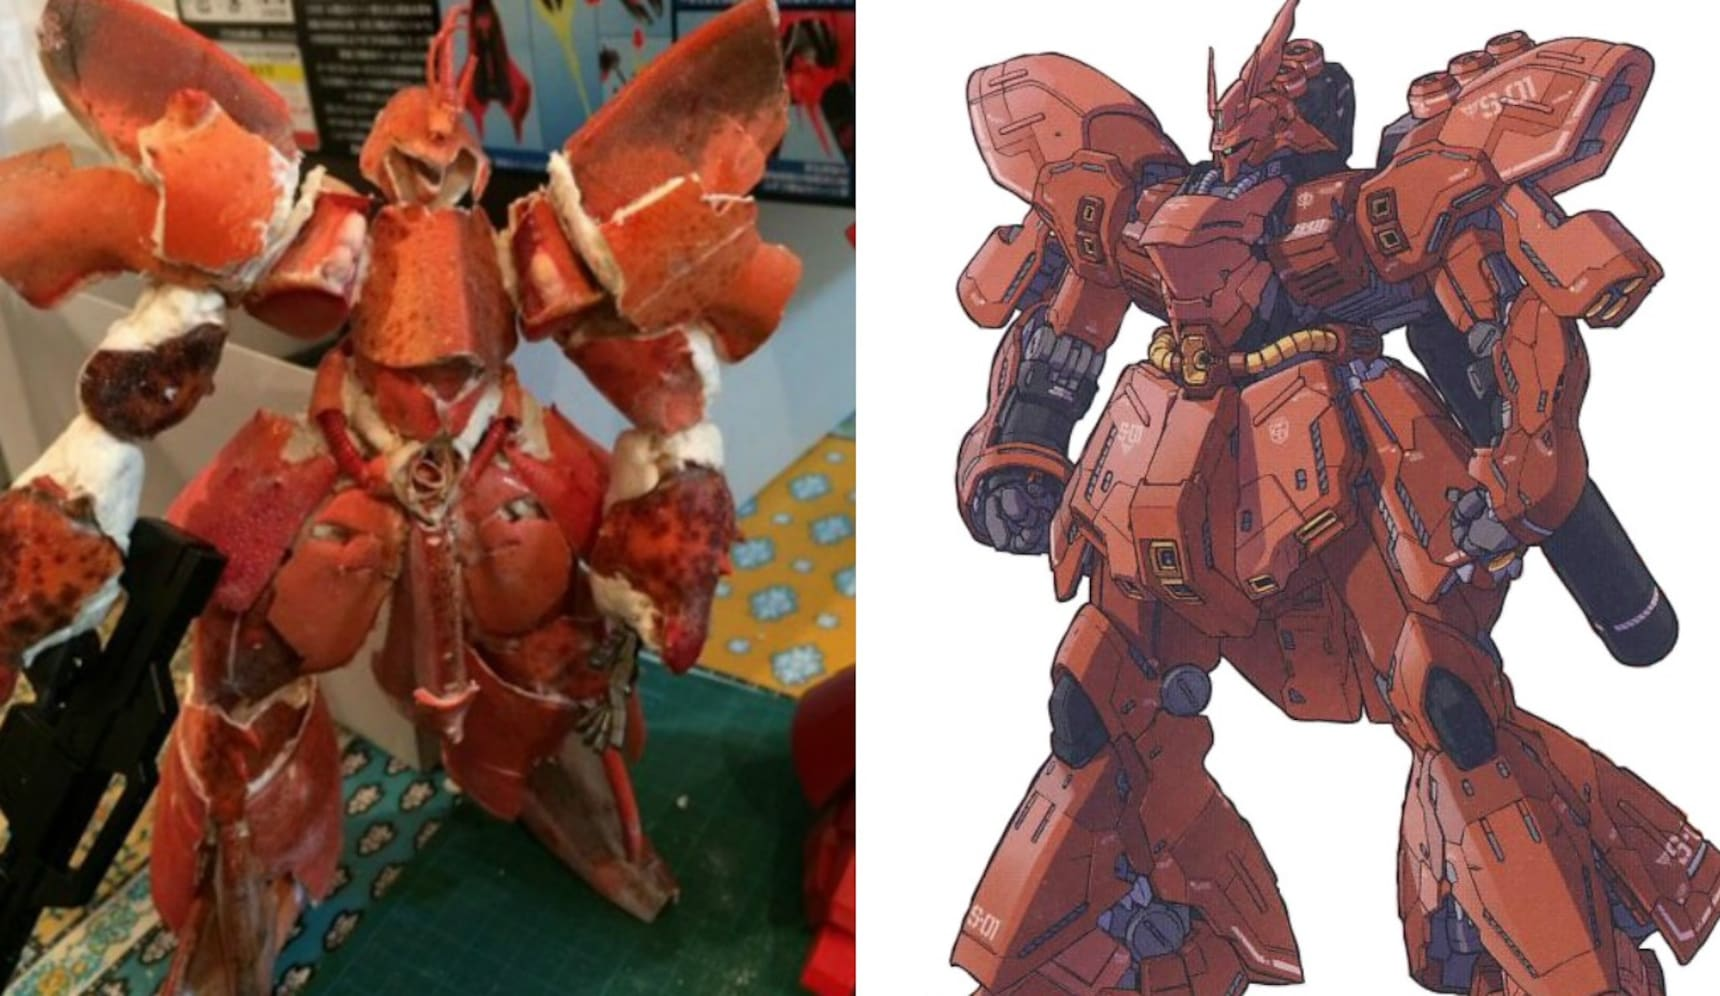 This Lobster Gundam Rocks!